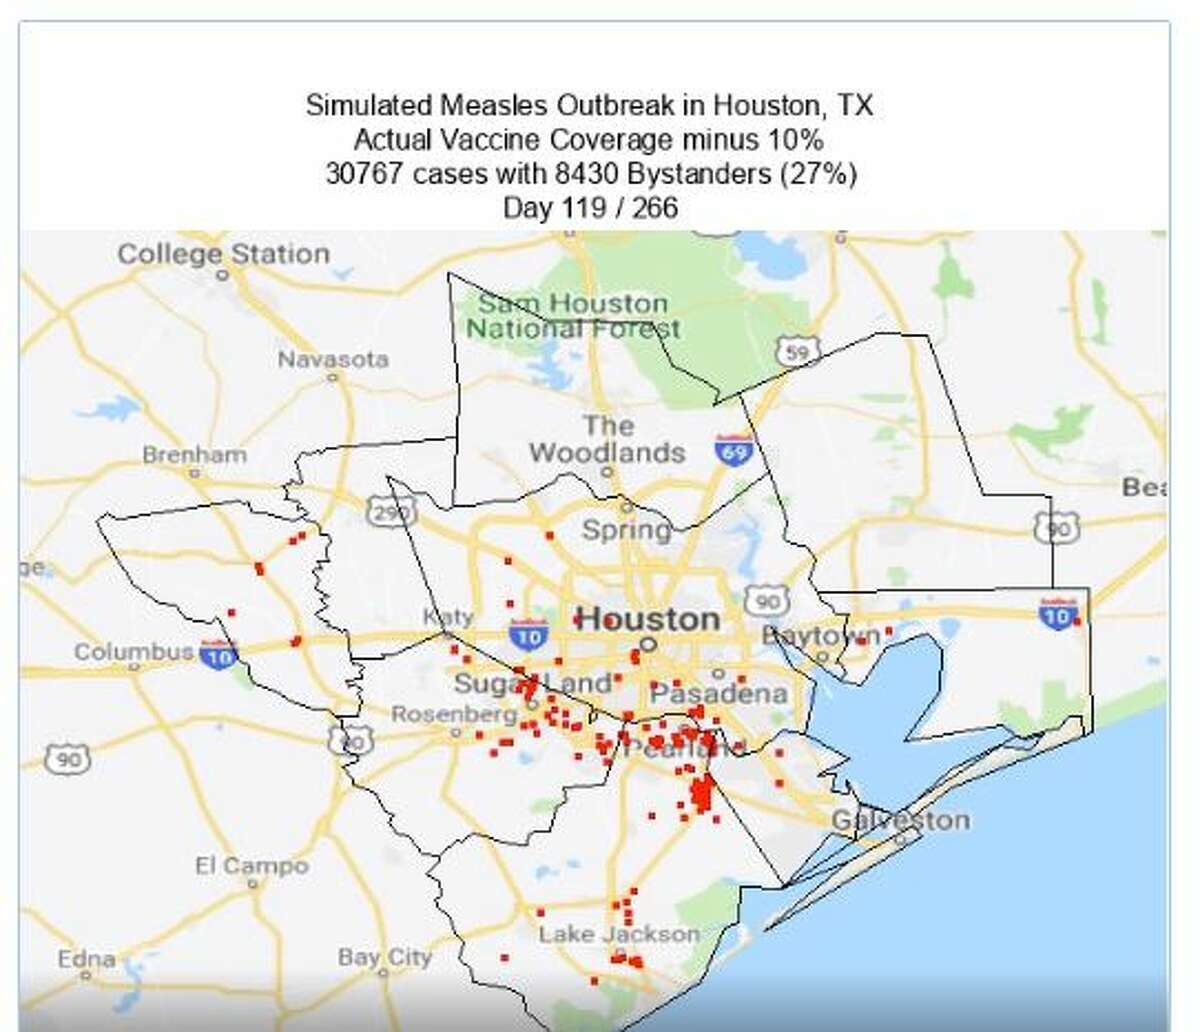 Simulated measles outbreak in HoustonDay 119/266Actual vaccine coverage minus 10%30,767 cases with 8,430 bystanders